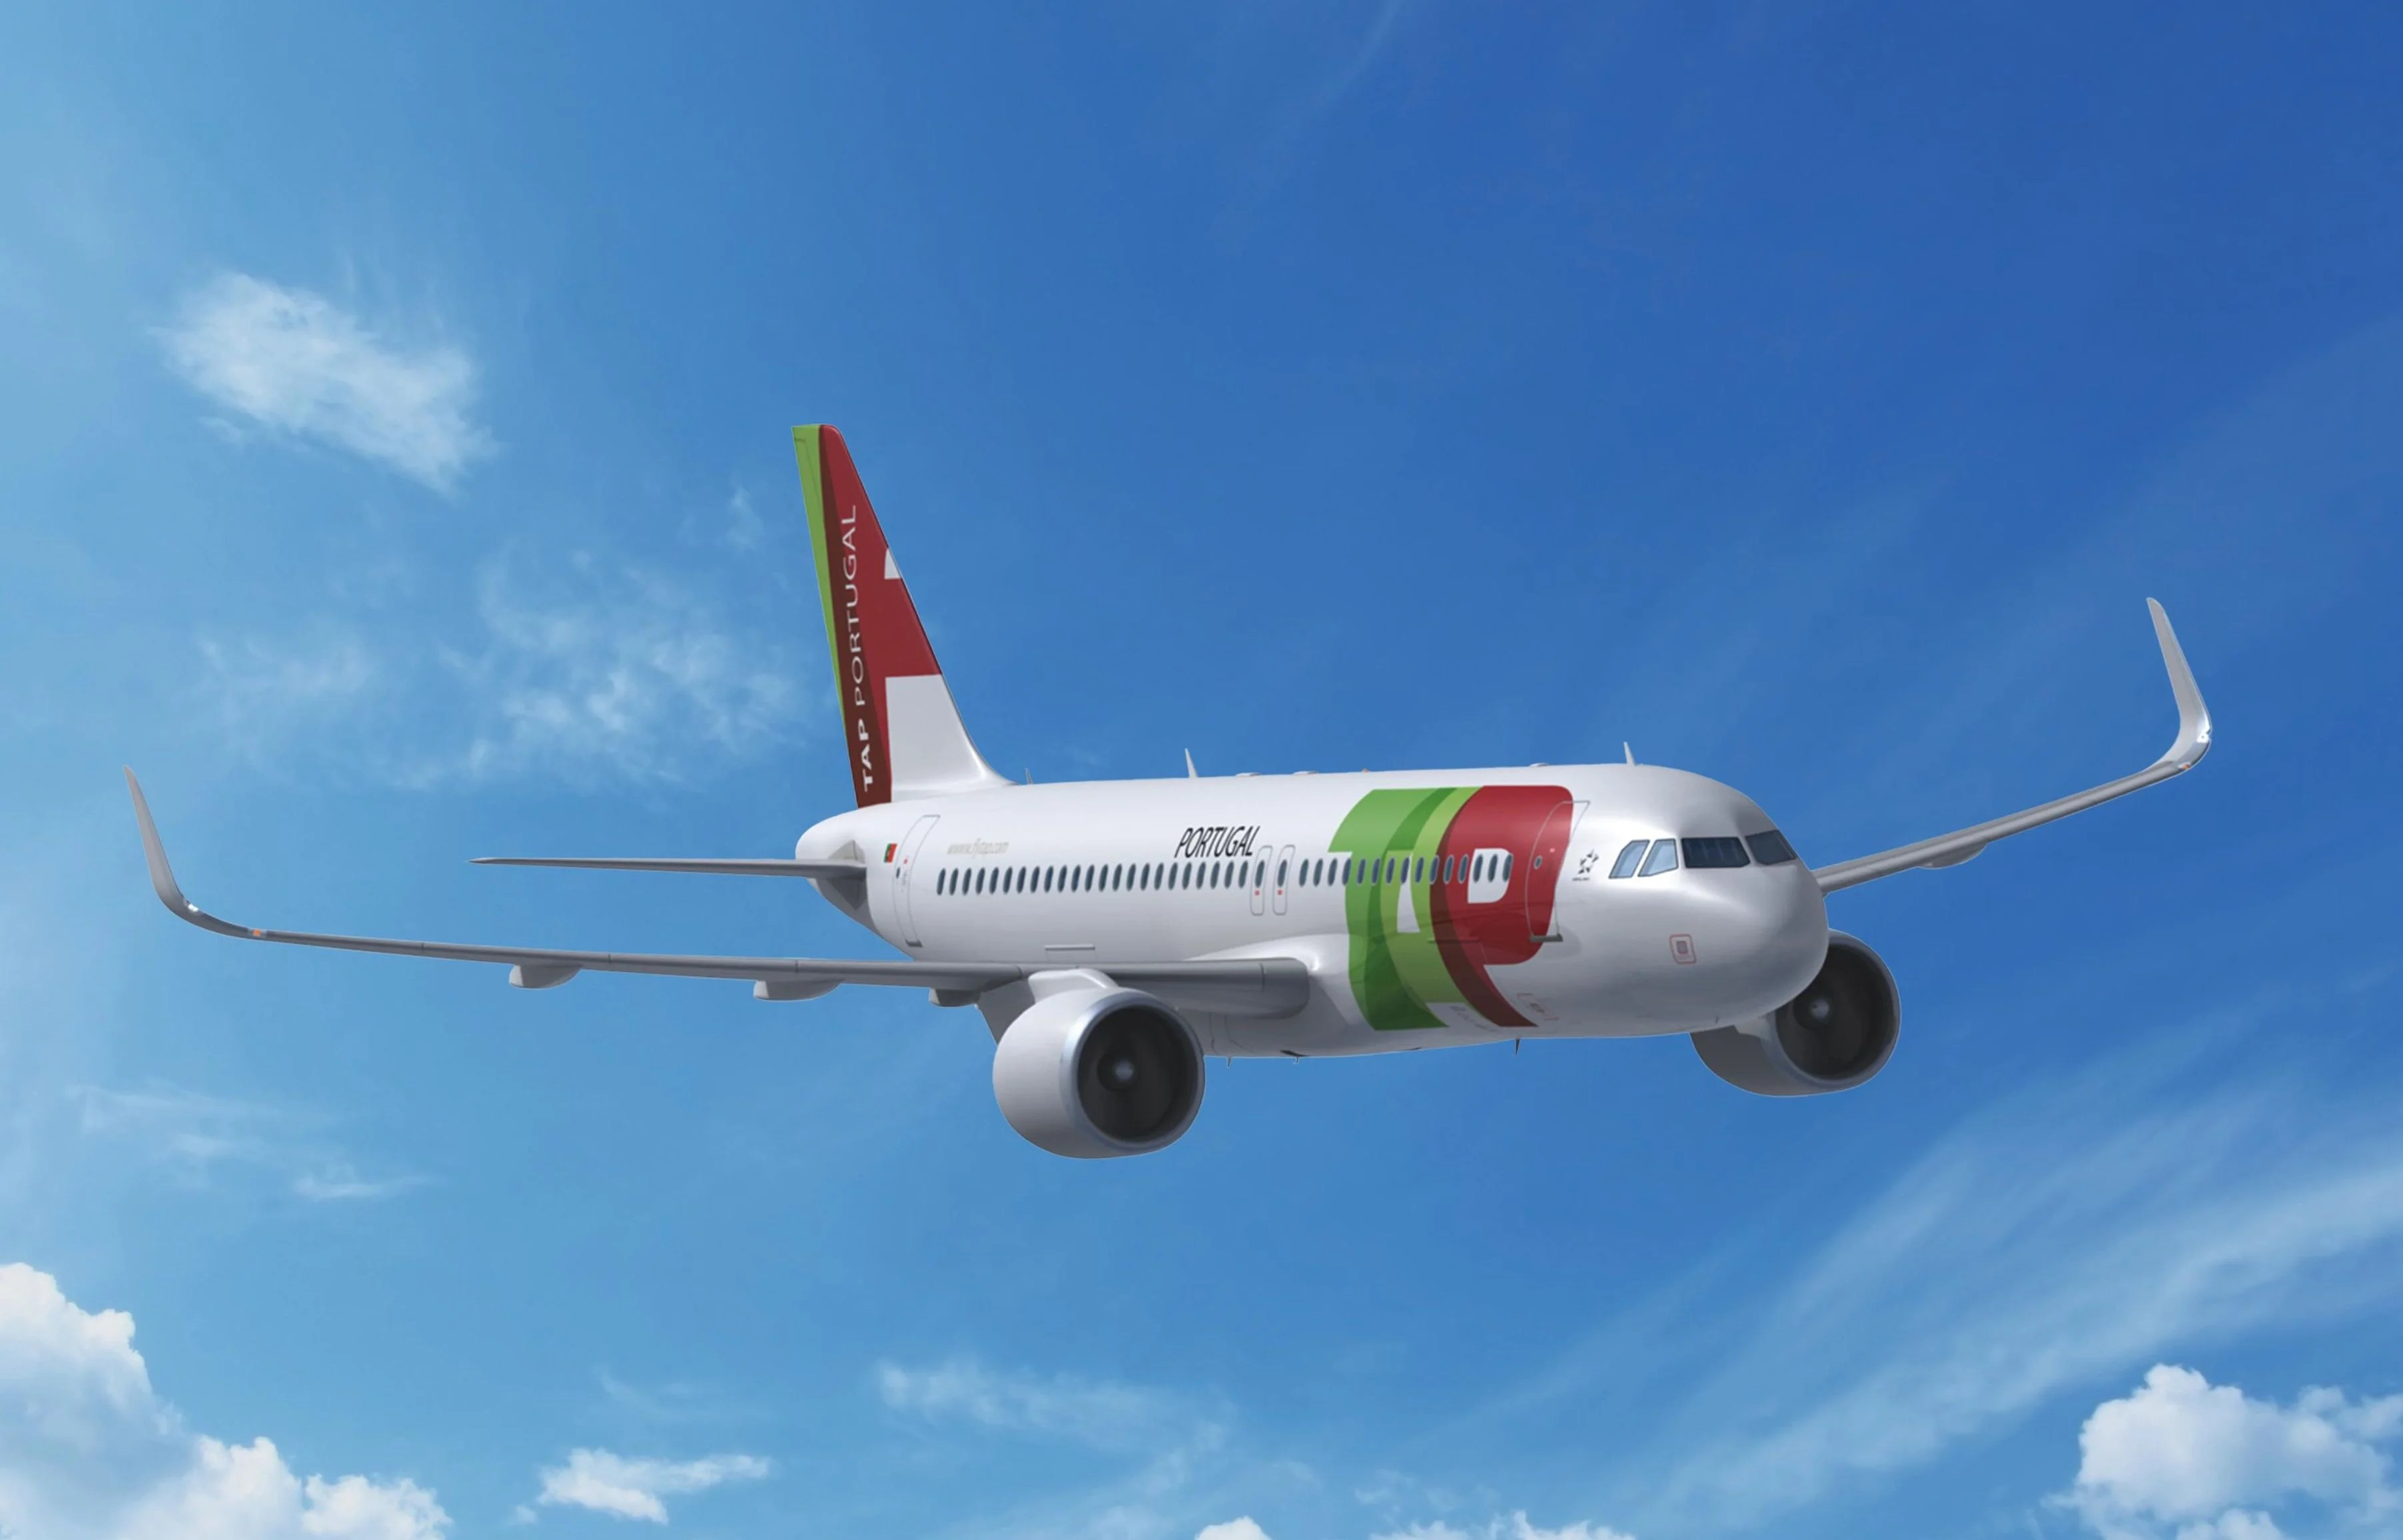 TAP Portugal's First A321LR Could Mark the Beginning of More Cramped Transatlantic Flights